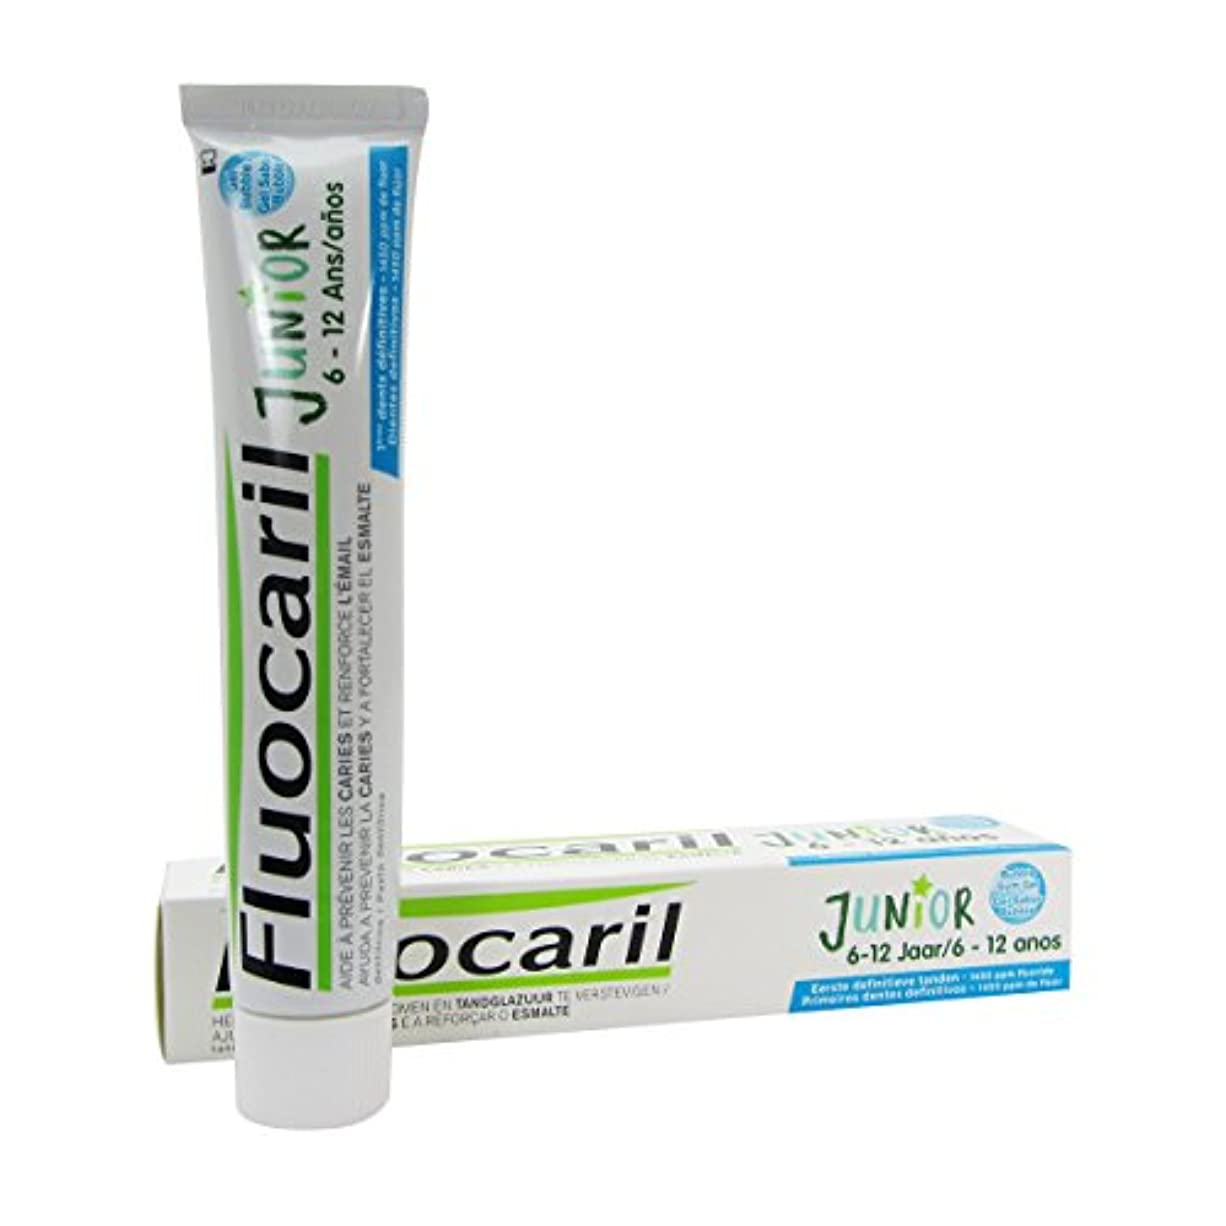 社会主義者正確さ母Fluocaril Junior 6 To 12 Bubble Dentifrice Gel 75ml [並行輸入品]